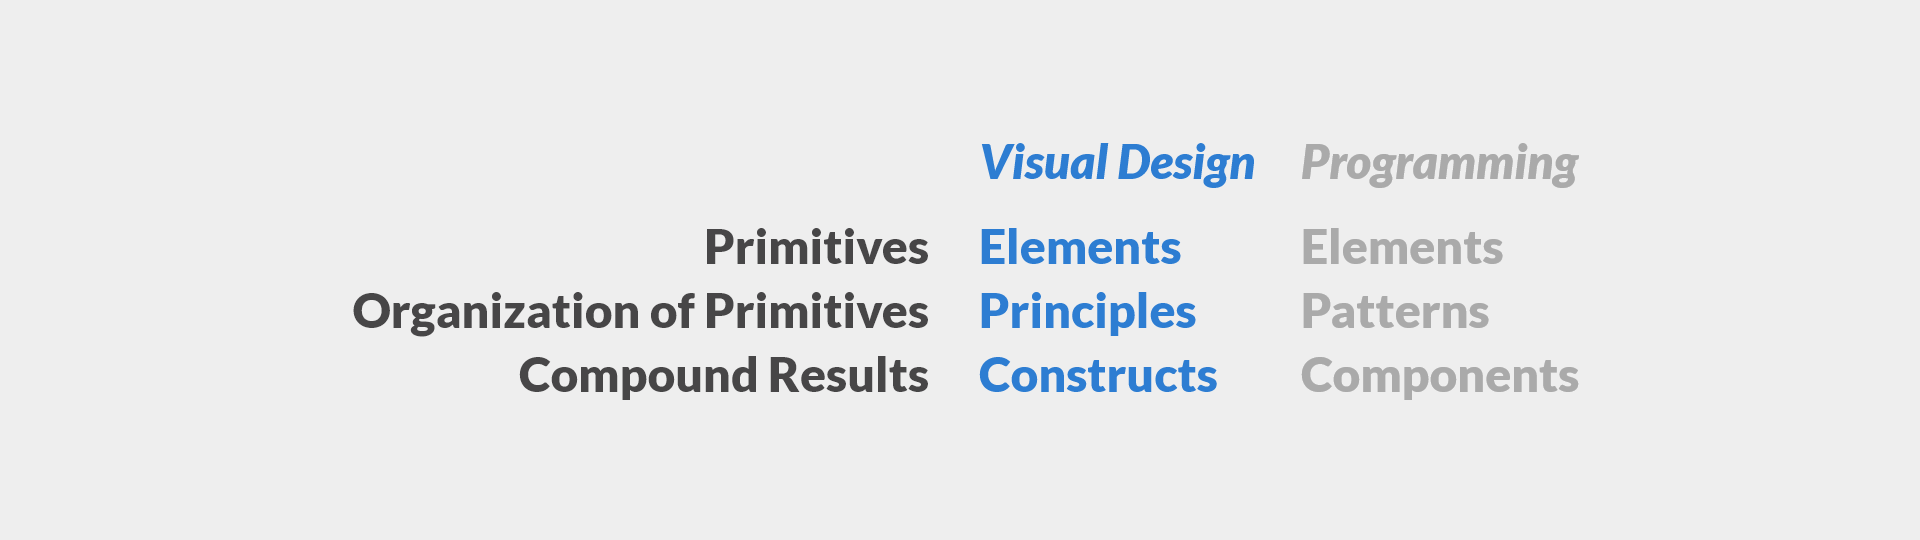 Visual Design and Programming